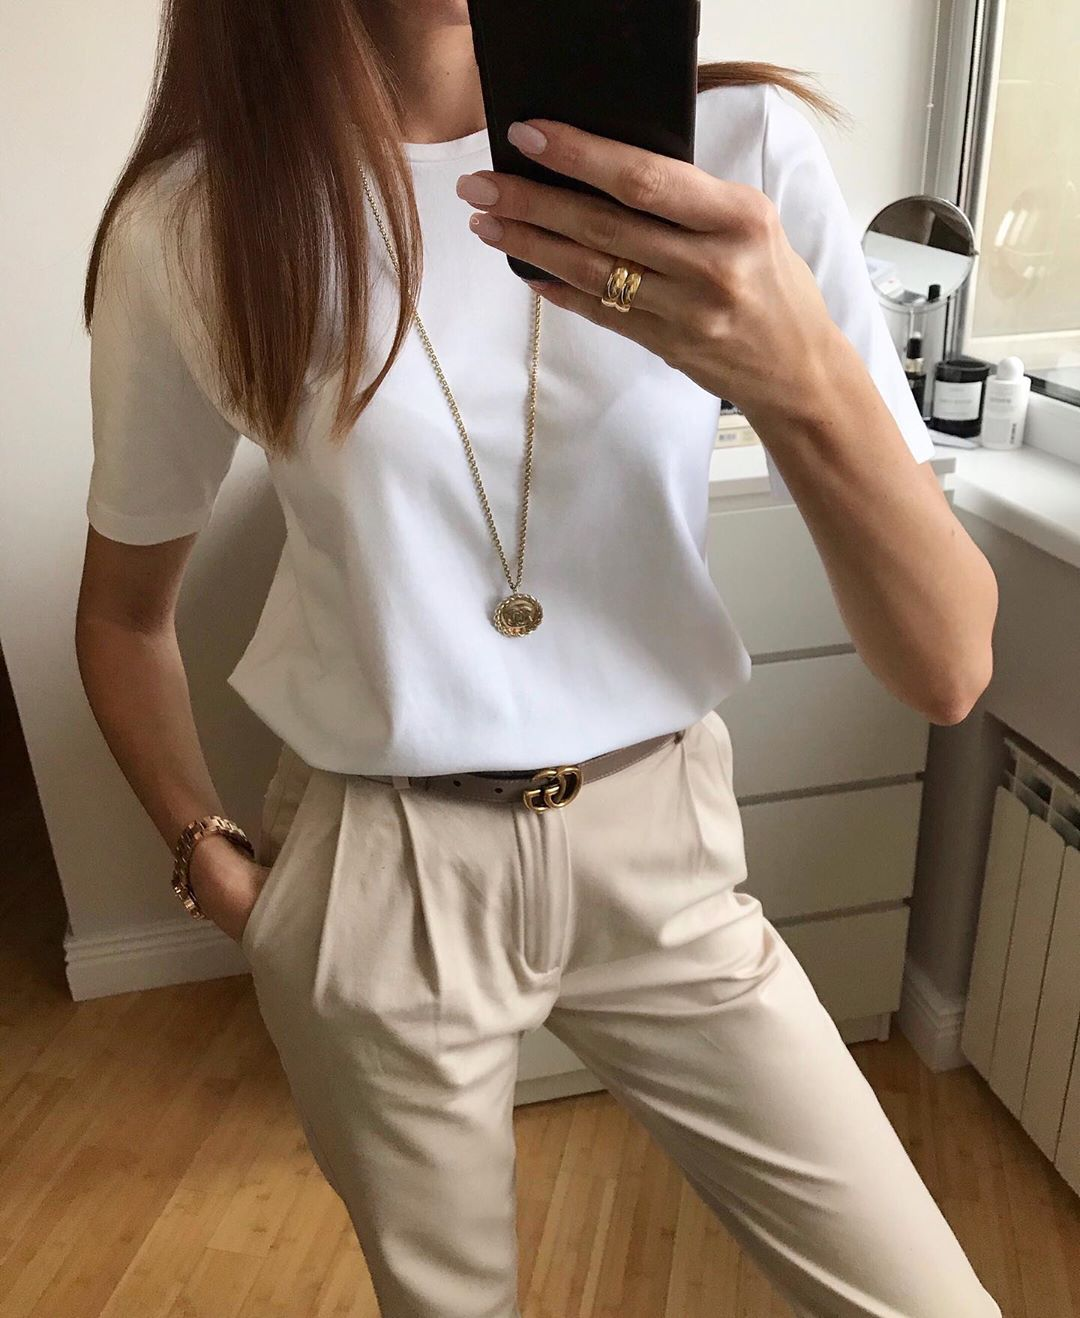 Elevated Basics Make a Chic Spring Outfit